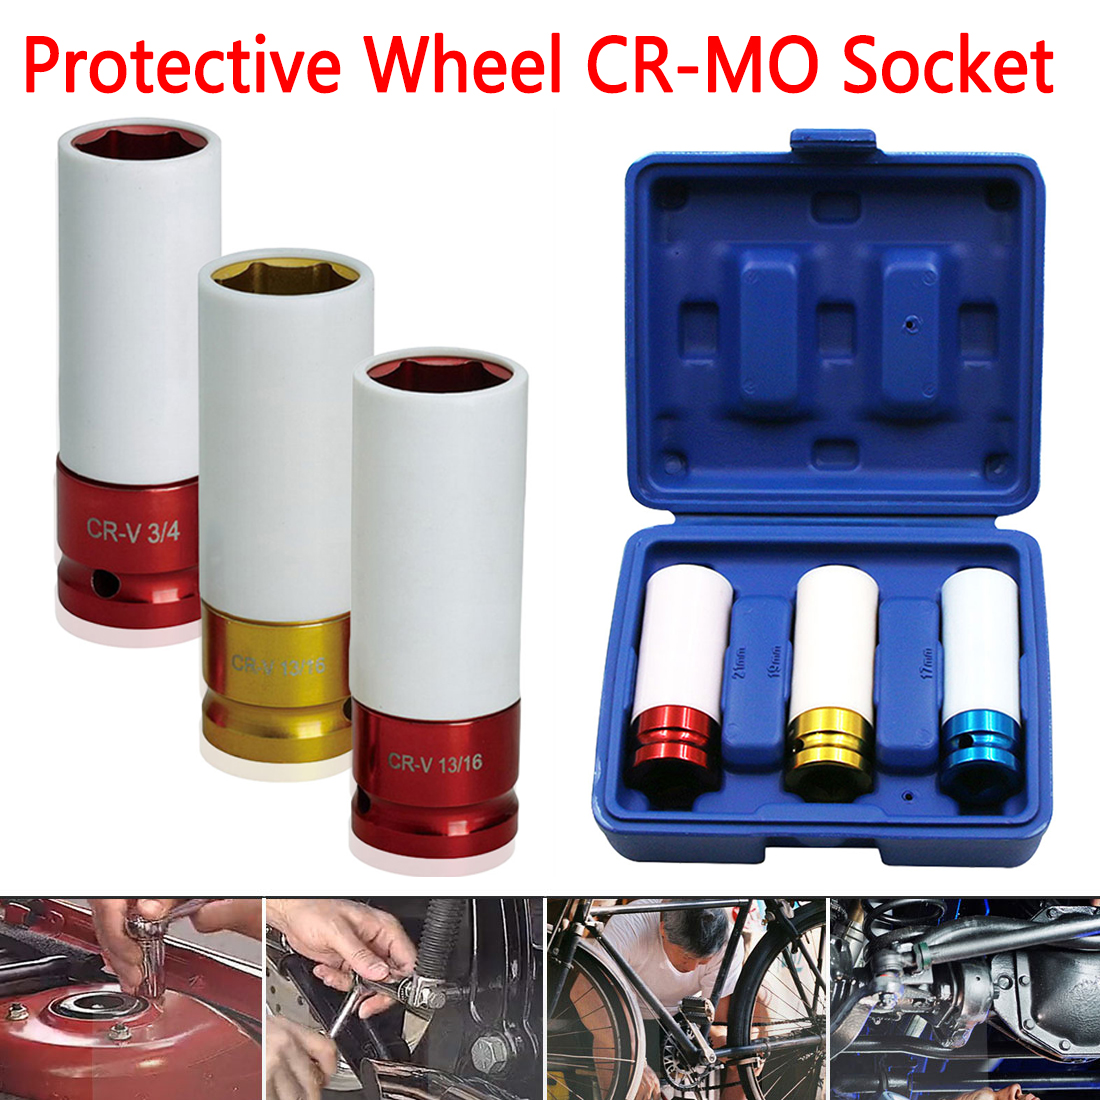 17/19/21mm Pneumatic Tyre Protection Sleeve Colorful Steam Sleeve Auto Repair Hardware Tool + Case 3pcs/set